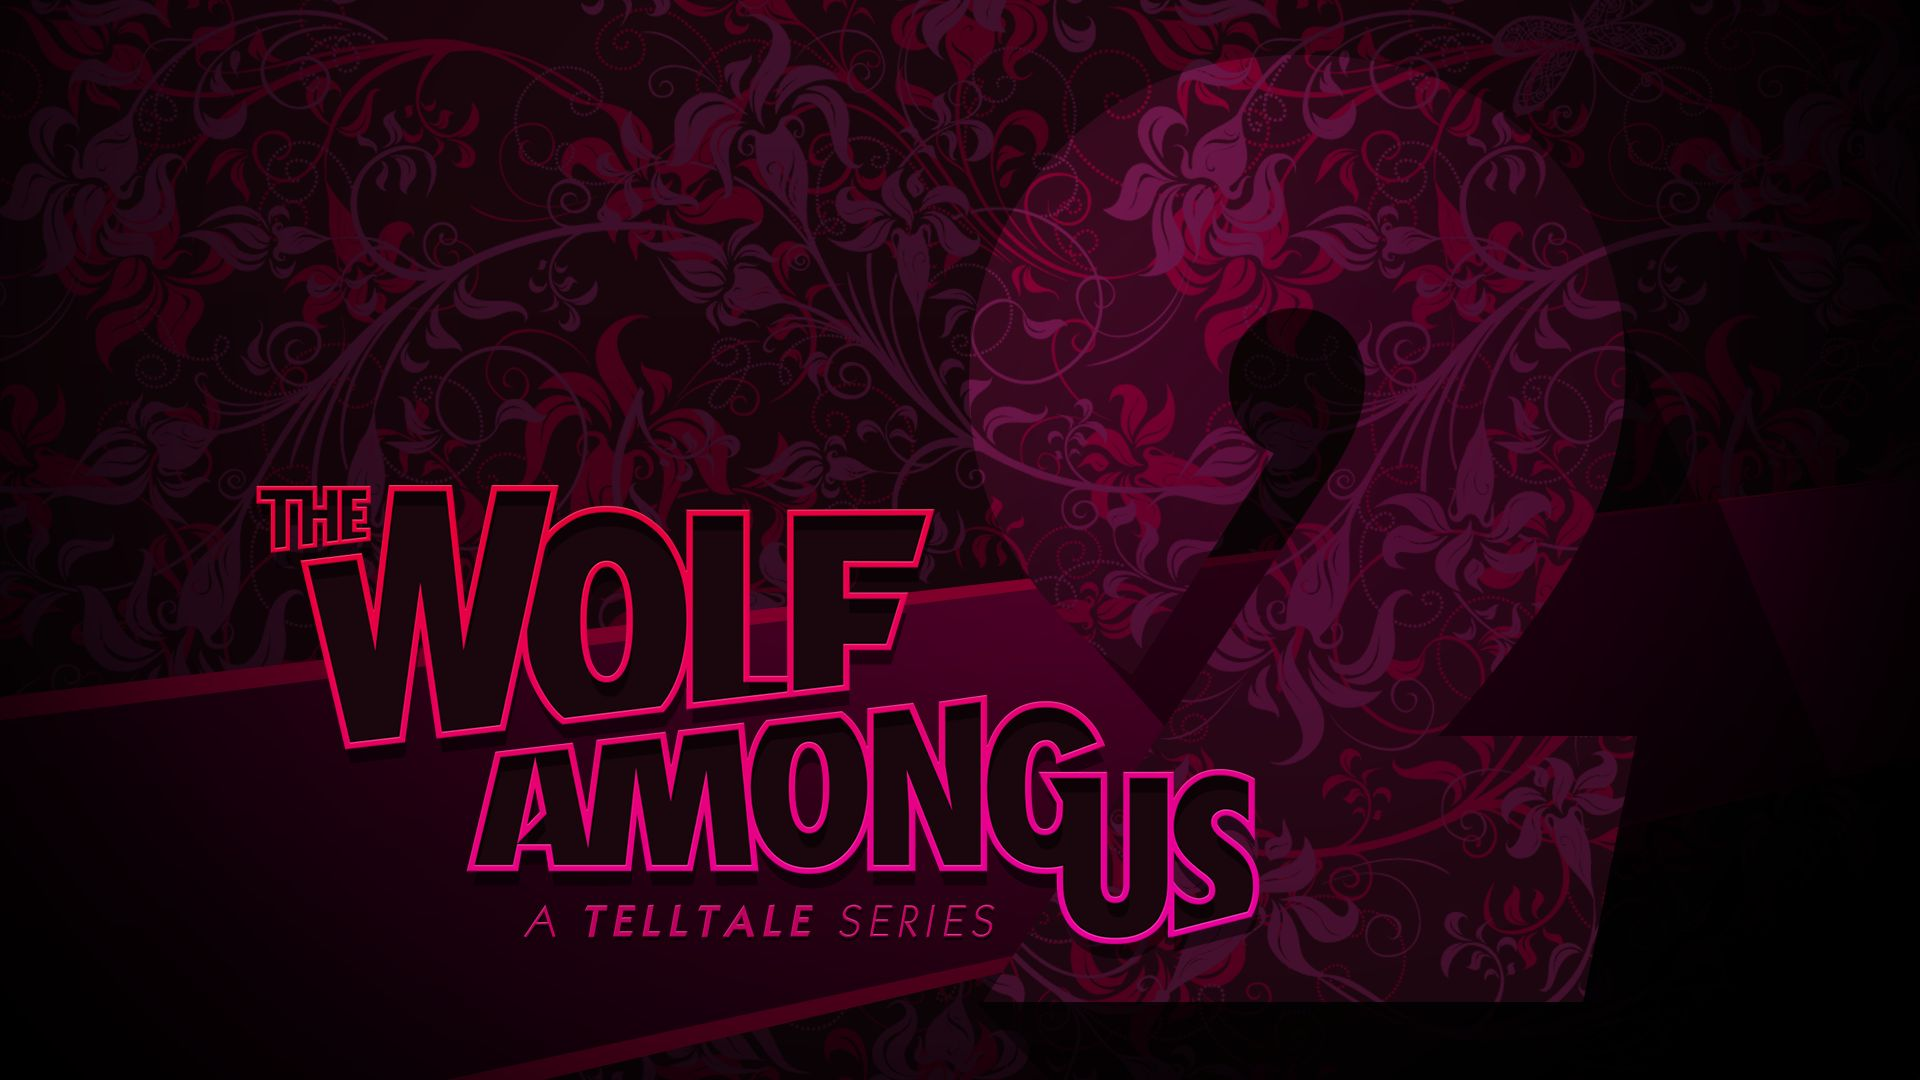 The Wolf Among Us 2: The Telltale Series